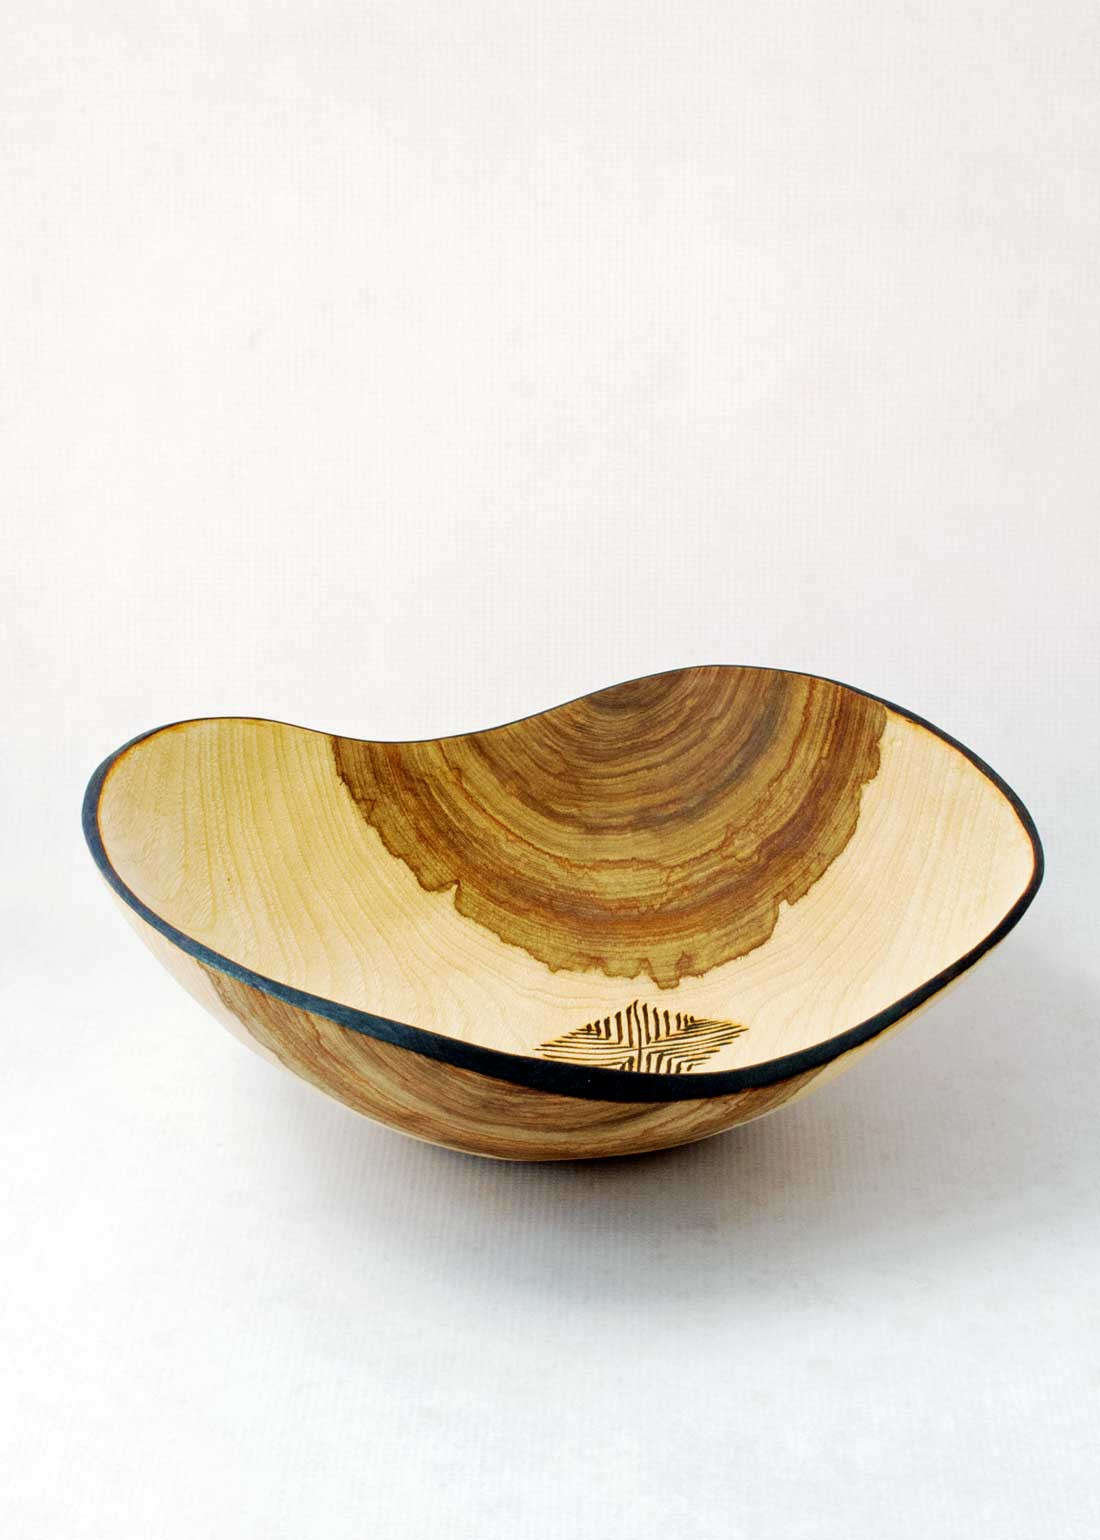 Kiaat Bowl